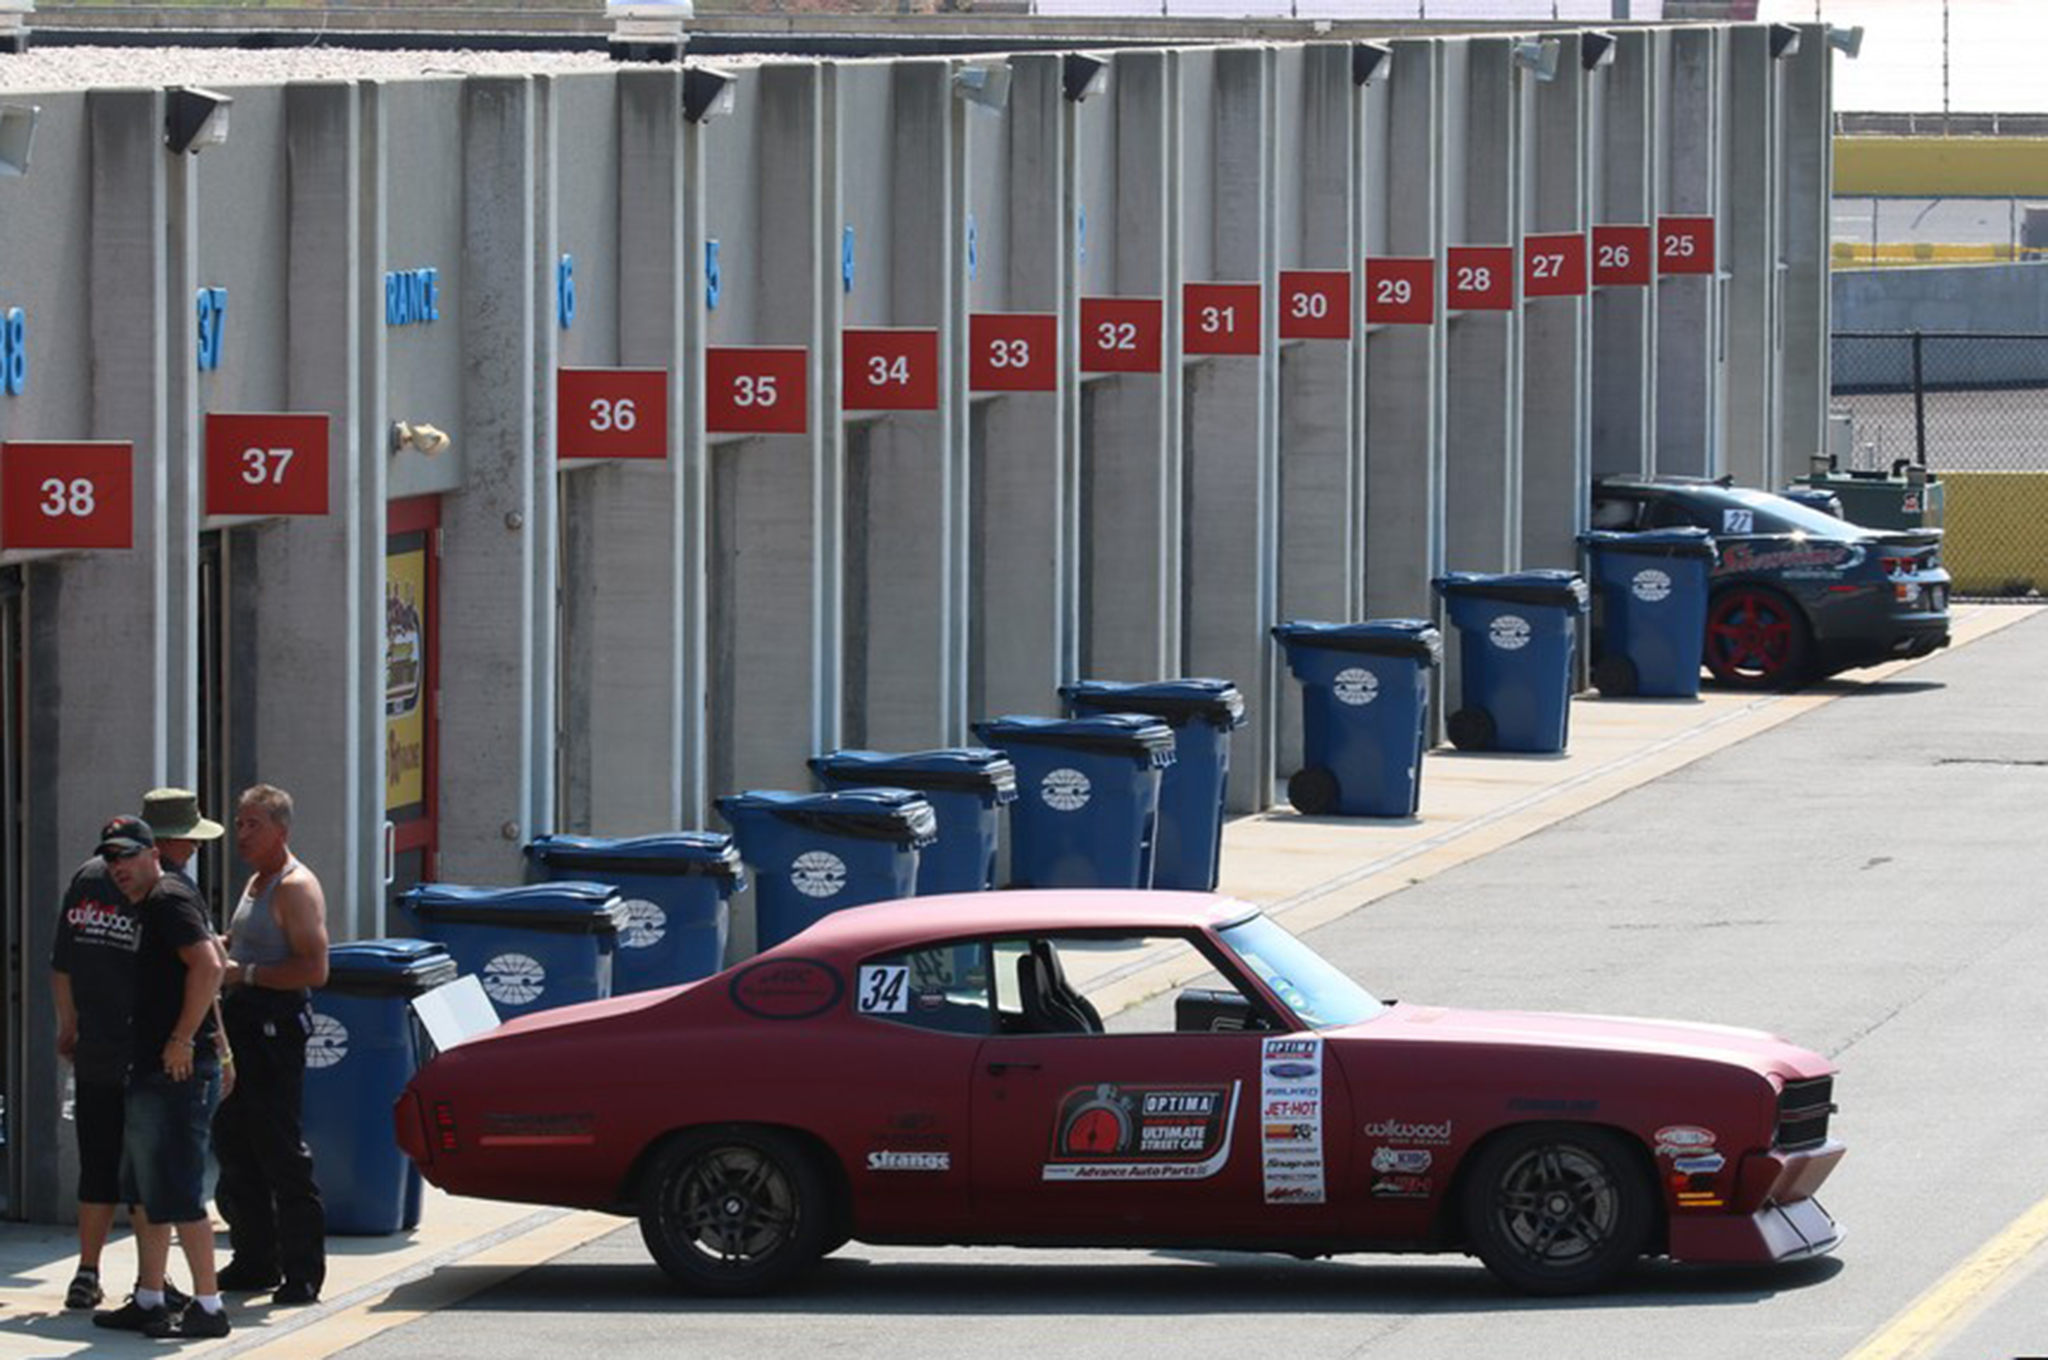 Tony Grzelakowski takes a break from running on the high banks of Charlotte Motor Speedway and lets his 1970 Chevelle cool off in the same NASCAR garages the pros use.